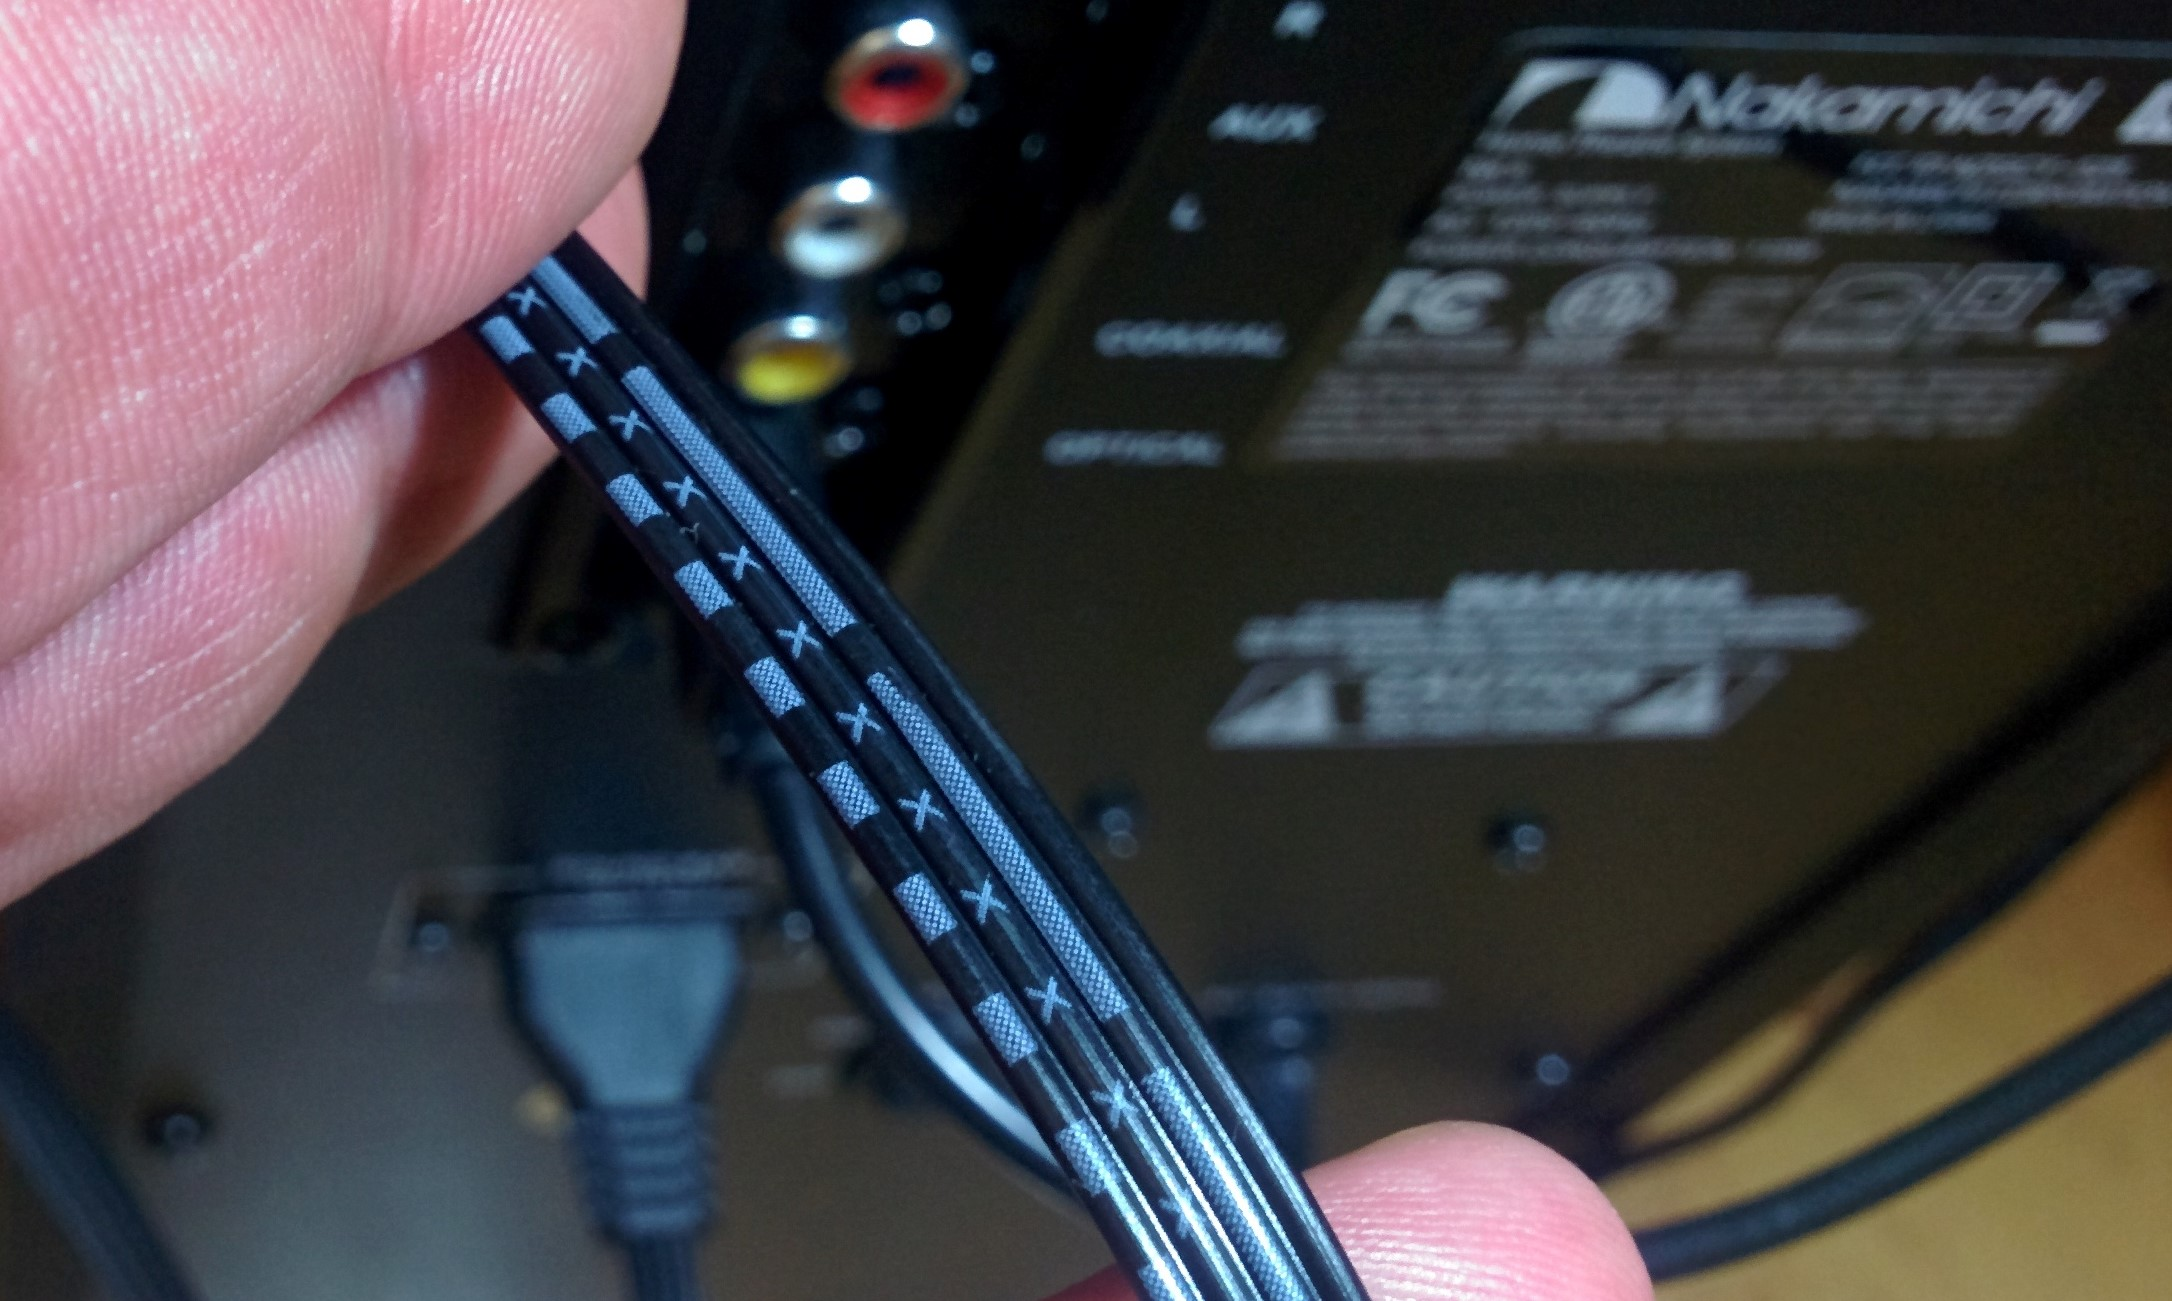 Need Help Decoding Speaker Wires Audioholics Home Theater Forums Cable Wiring I Will Be Using A New Connector From Speakers To Sub Power Box Once Figure Out What The Codes On Are Since Dont See How Teardown